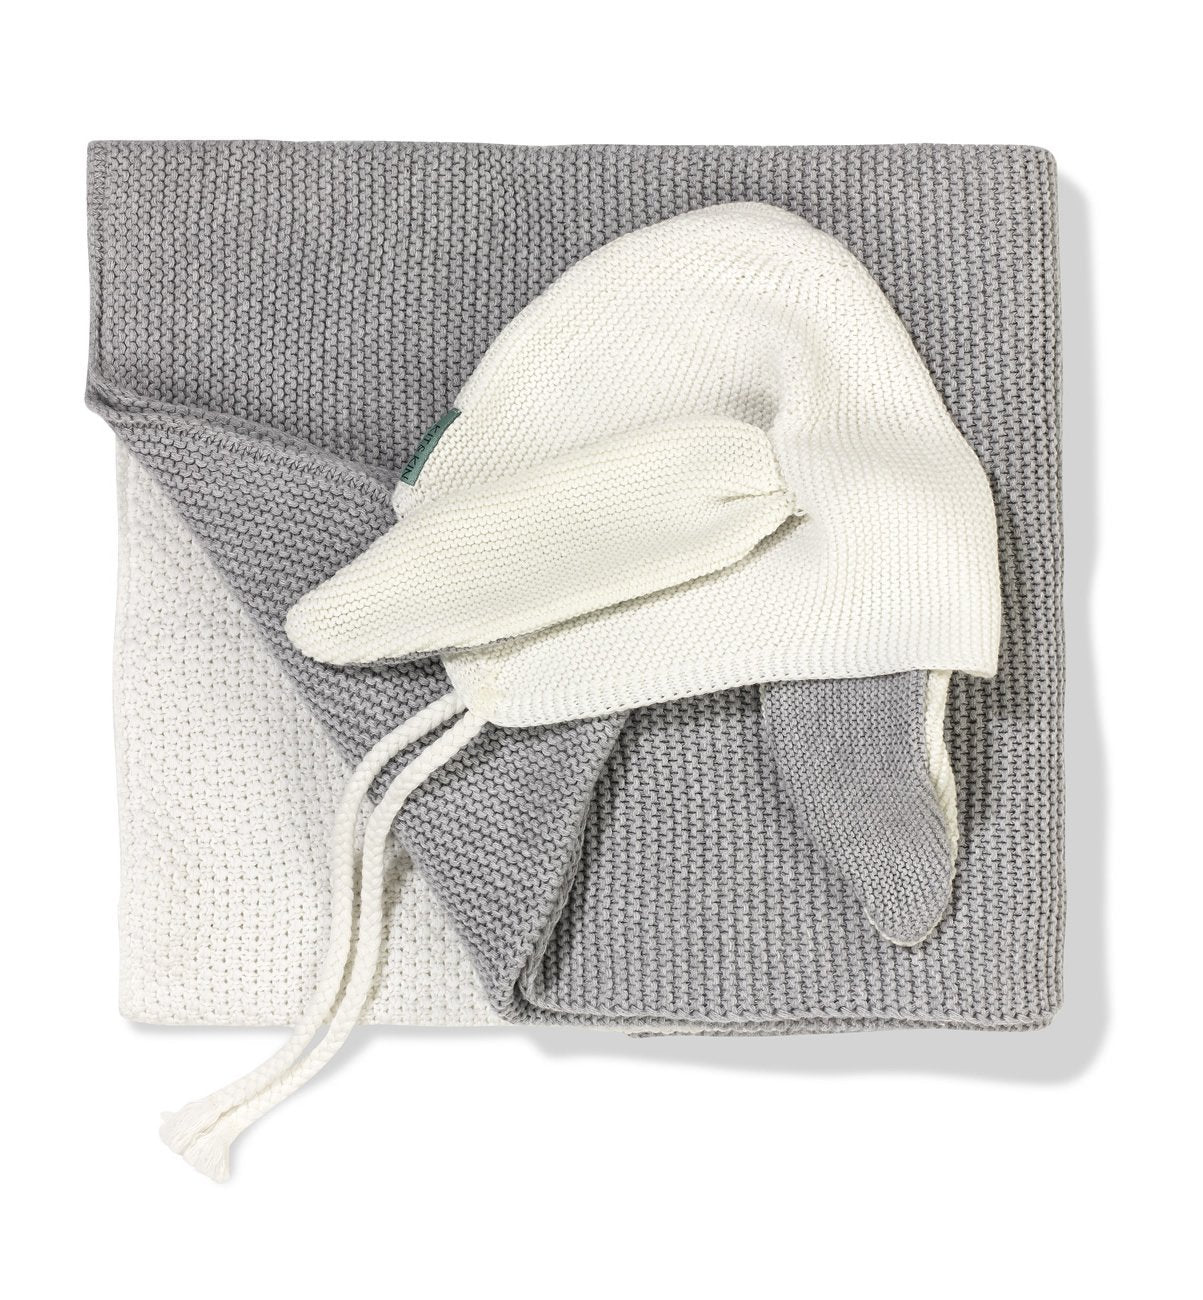 100% organic cotton grey hat and blanket bundle